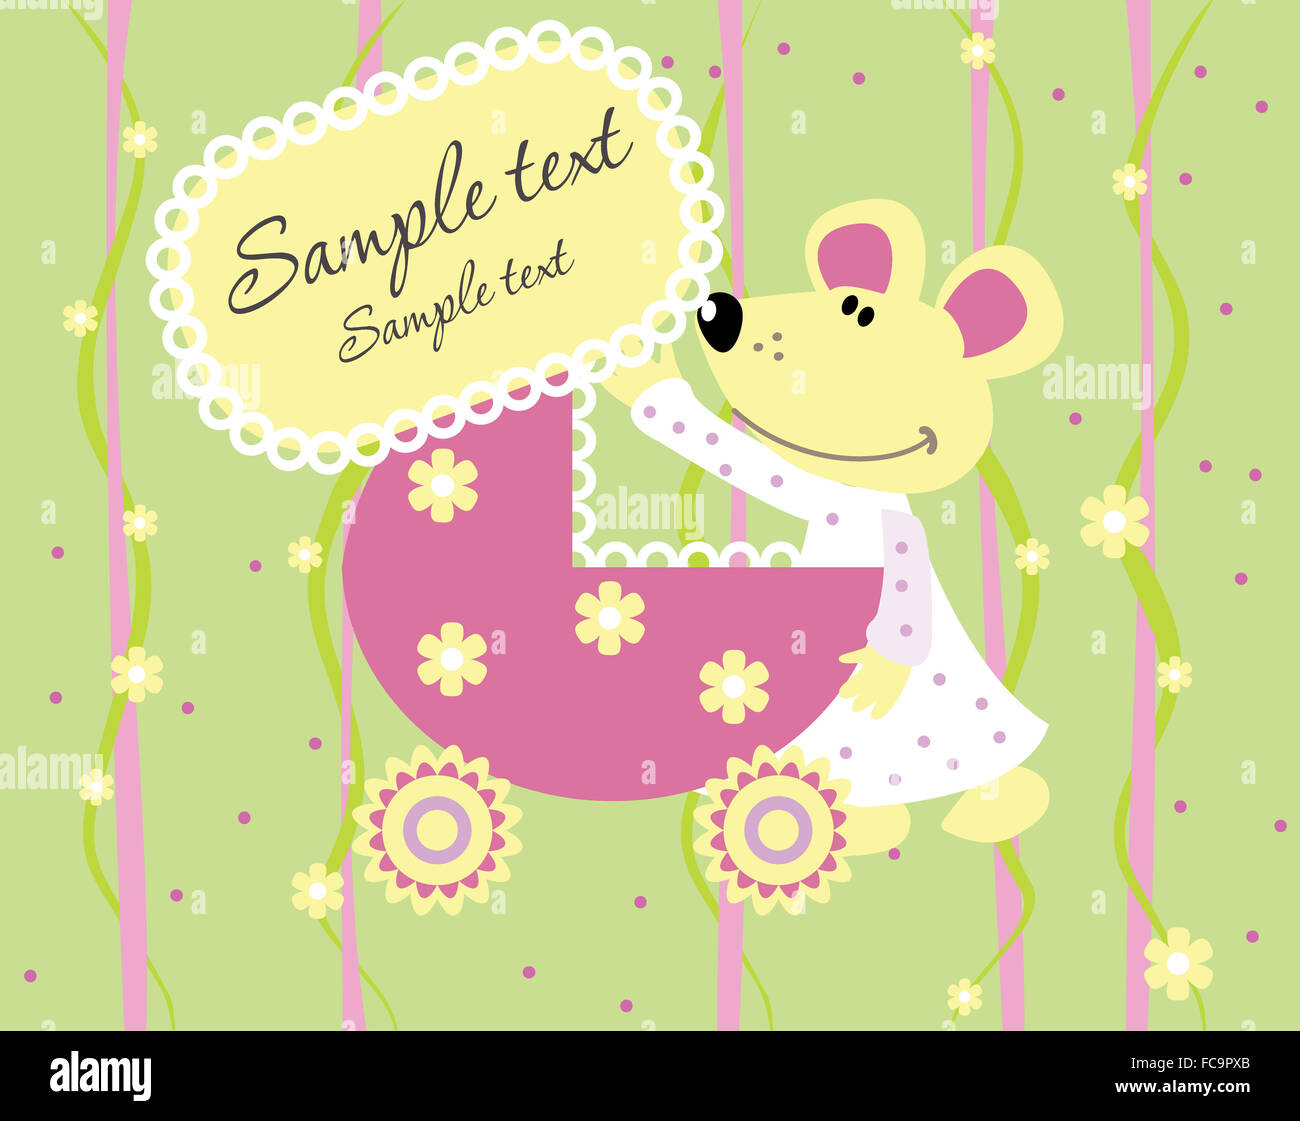 baby arrival announcement card stock photo 93643267 alamy